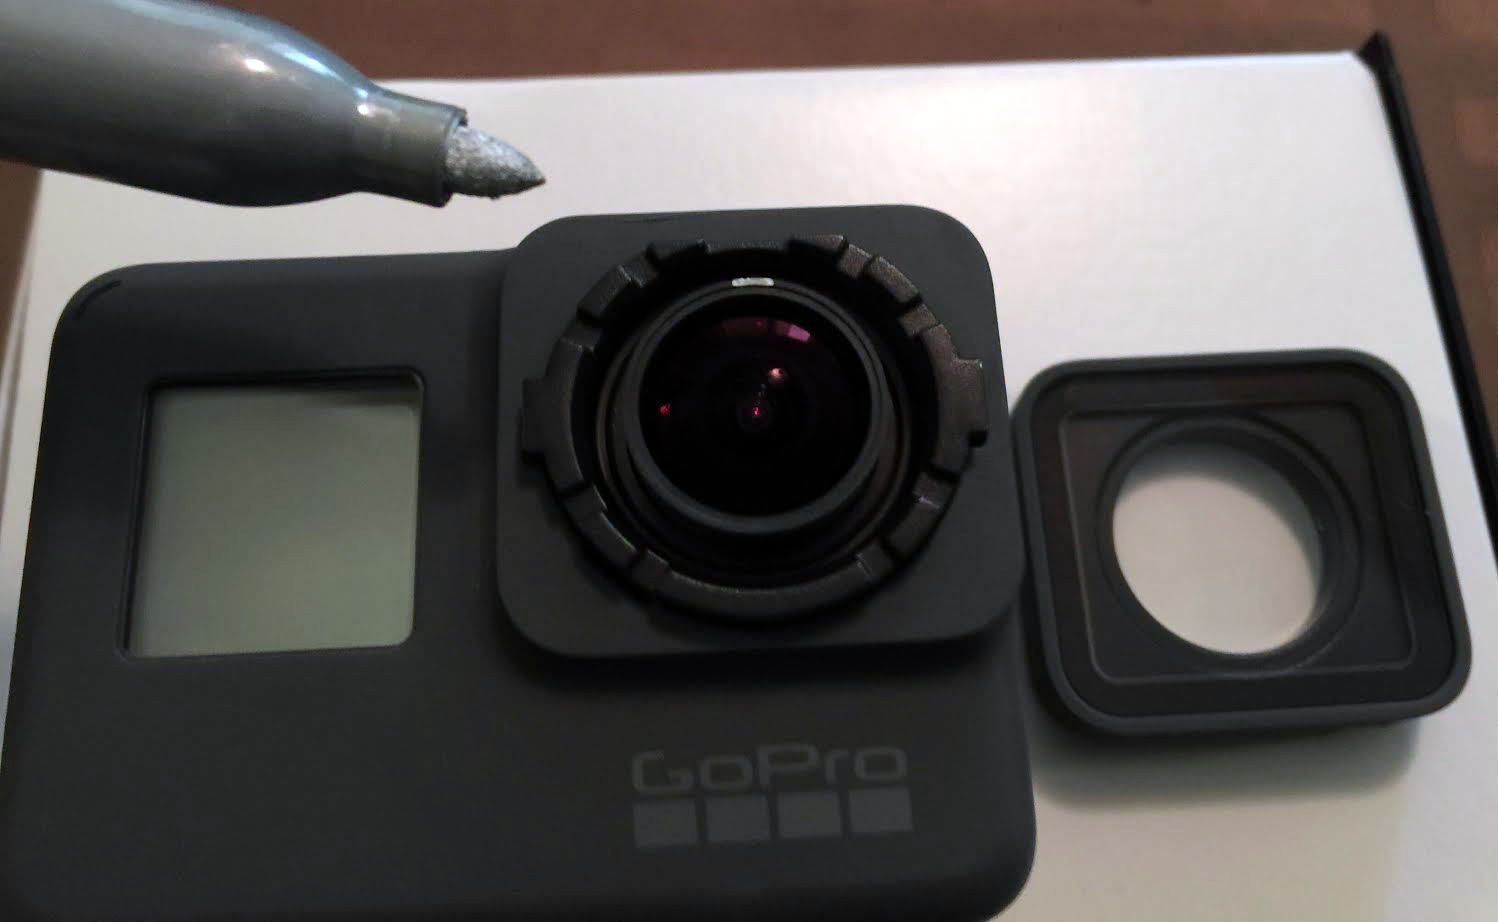 GoPro Hero 5 Modified Night Vision IR Camera (Infrared)